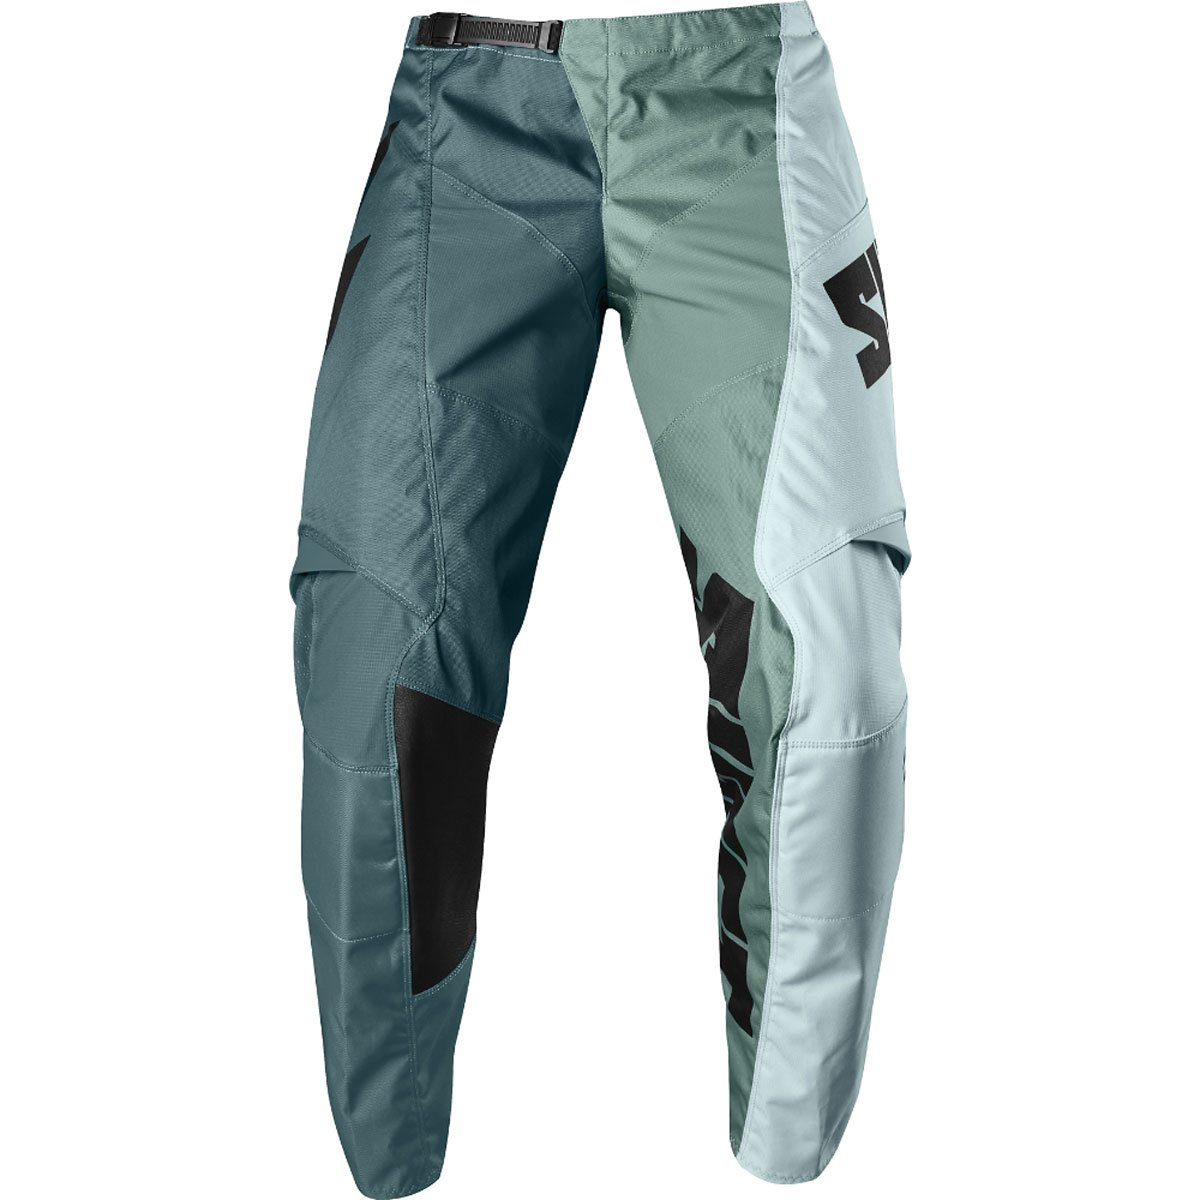 2018 Shift White Label Tarmac Pants-Teal-32